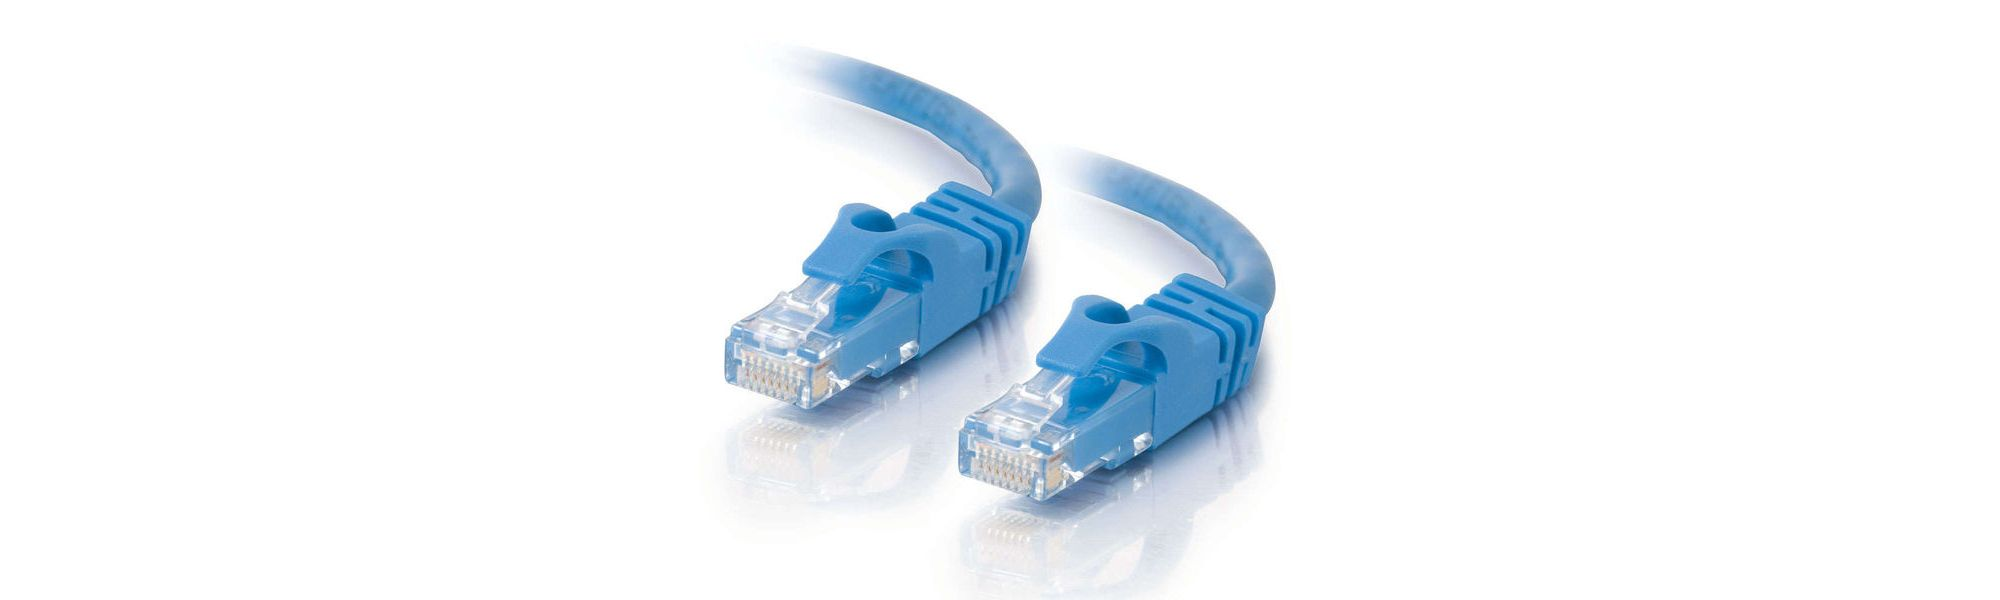 2m Cat6 550MHz Snagless Patch Cable Blue: 83388